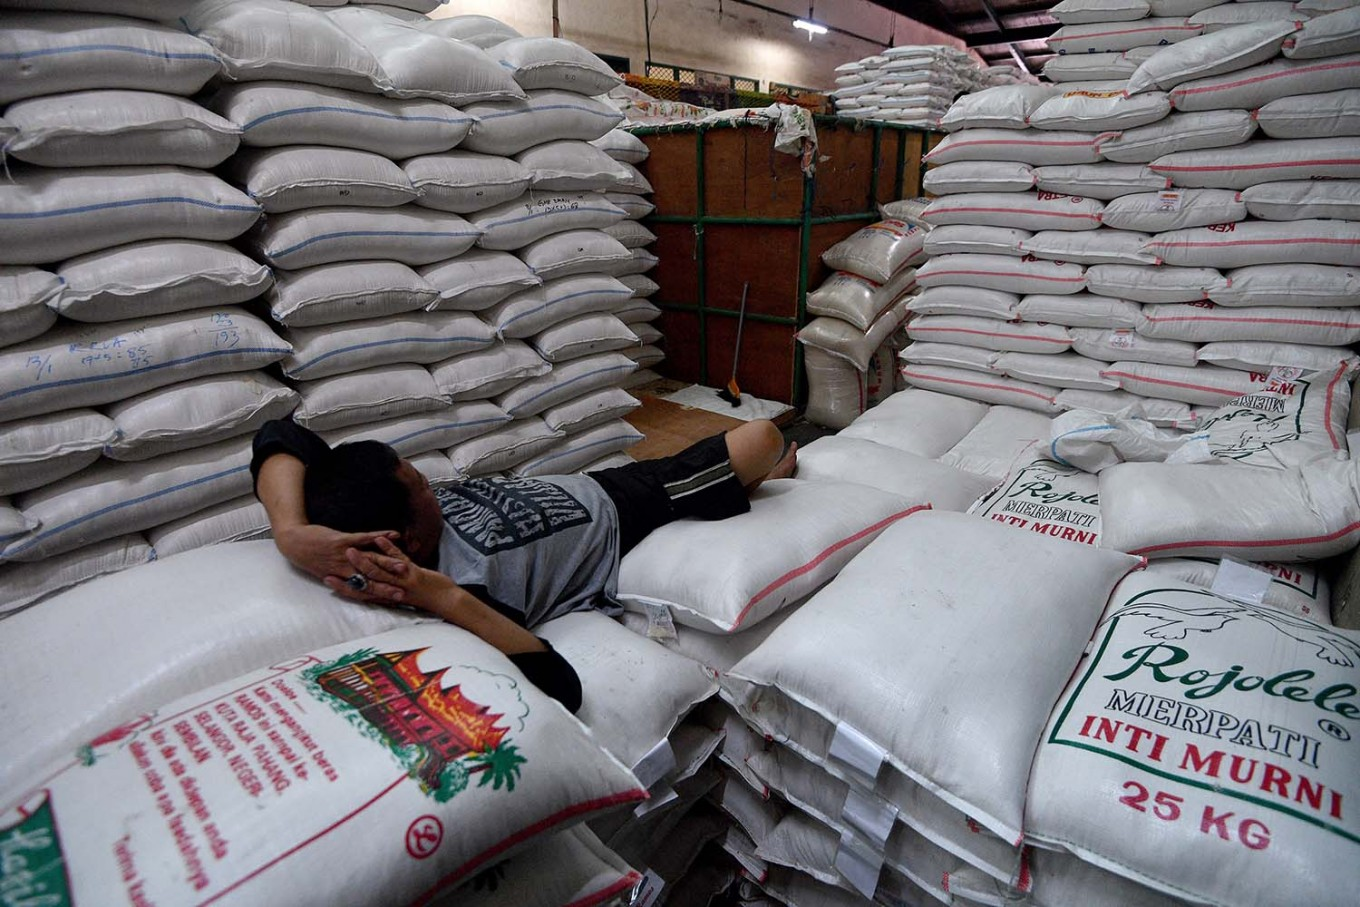 Jakarta records 0.37% inflation in February